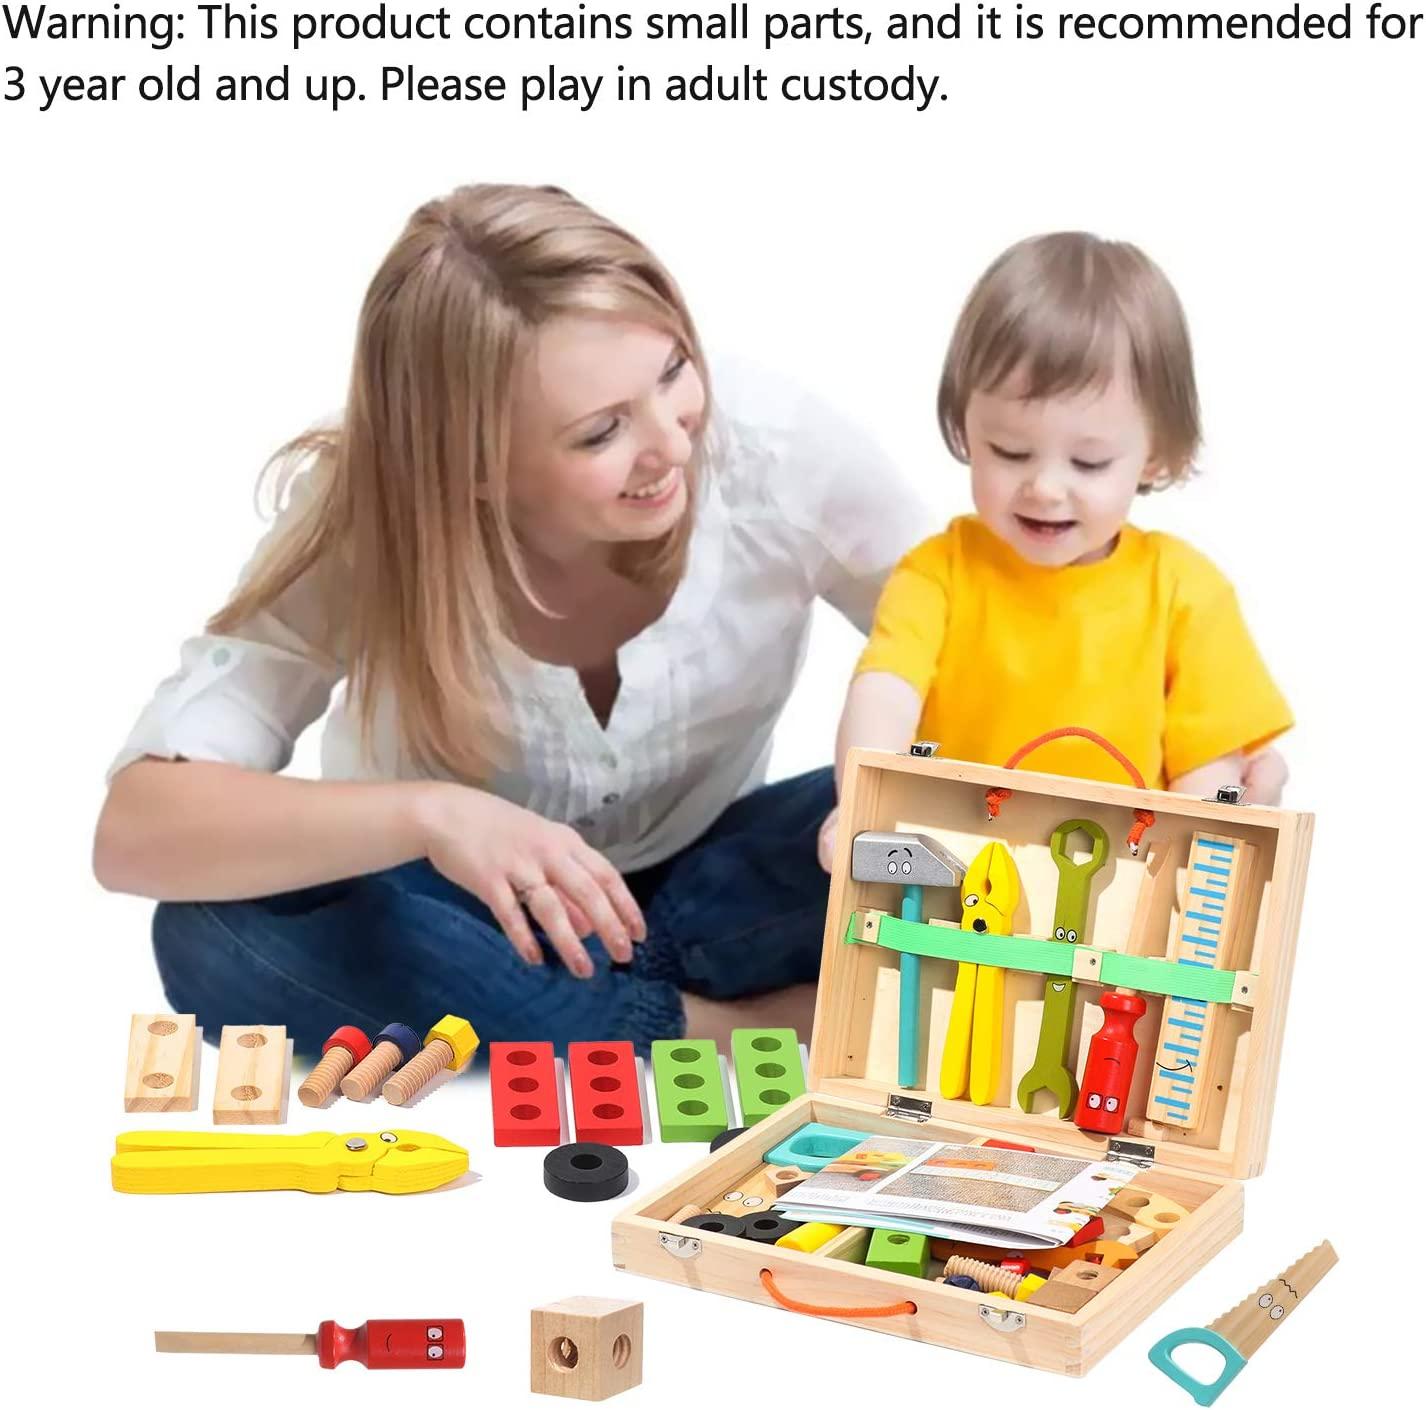 Gift for Toddlers 3 Year Old and Up Boys Girls DRESSPLUS Tool Set for Toddlers Creative DIY Educational Construction Kids Toy Wooden Simulation Toolbox Kit